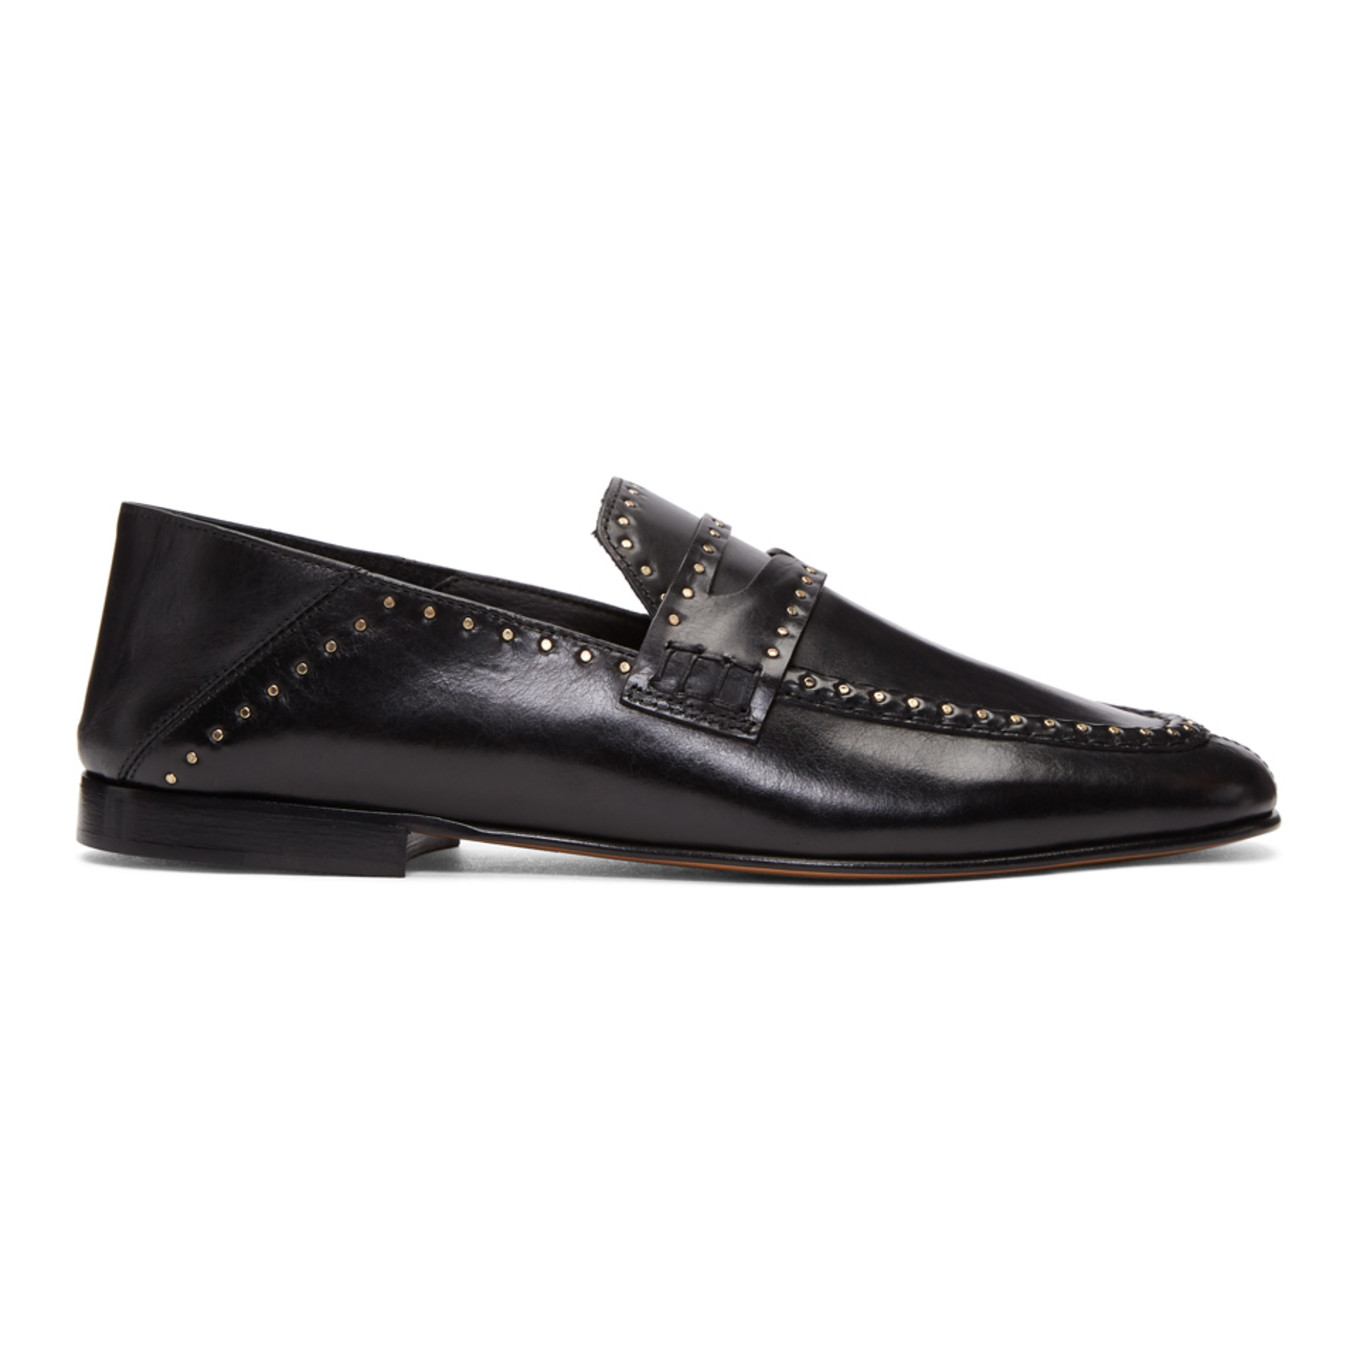 Black Vegetal Studded Loafers Isabel Marant 6DRtznk